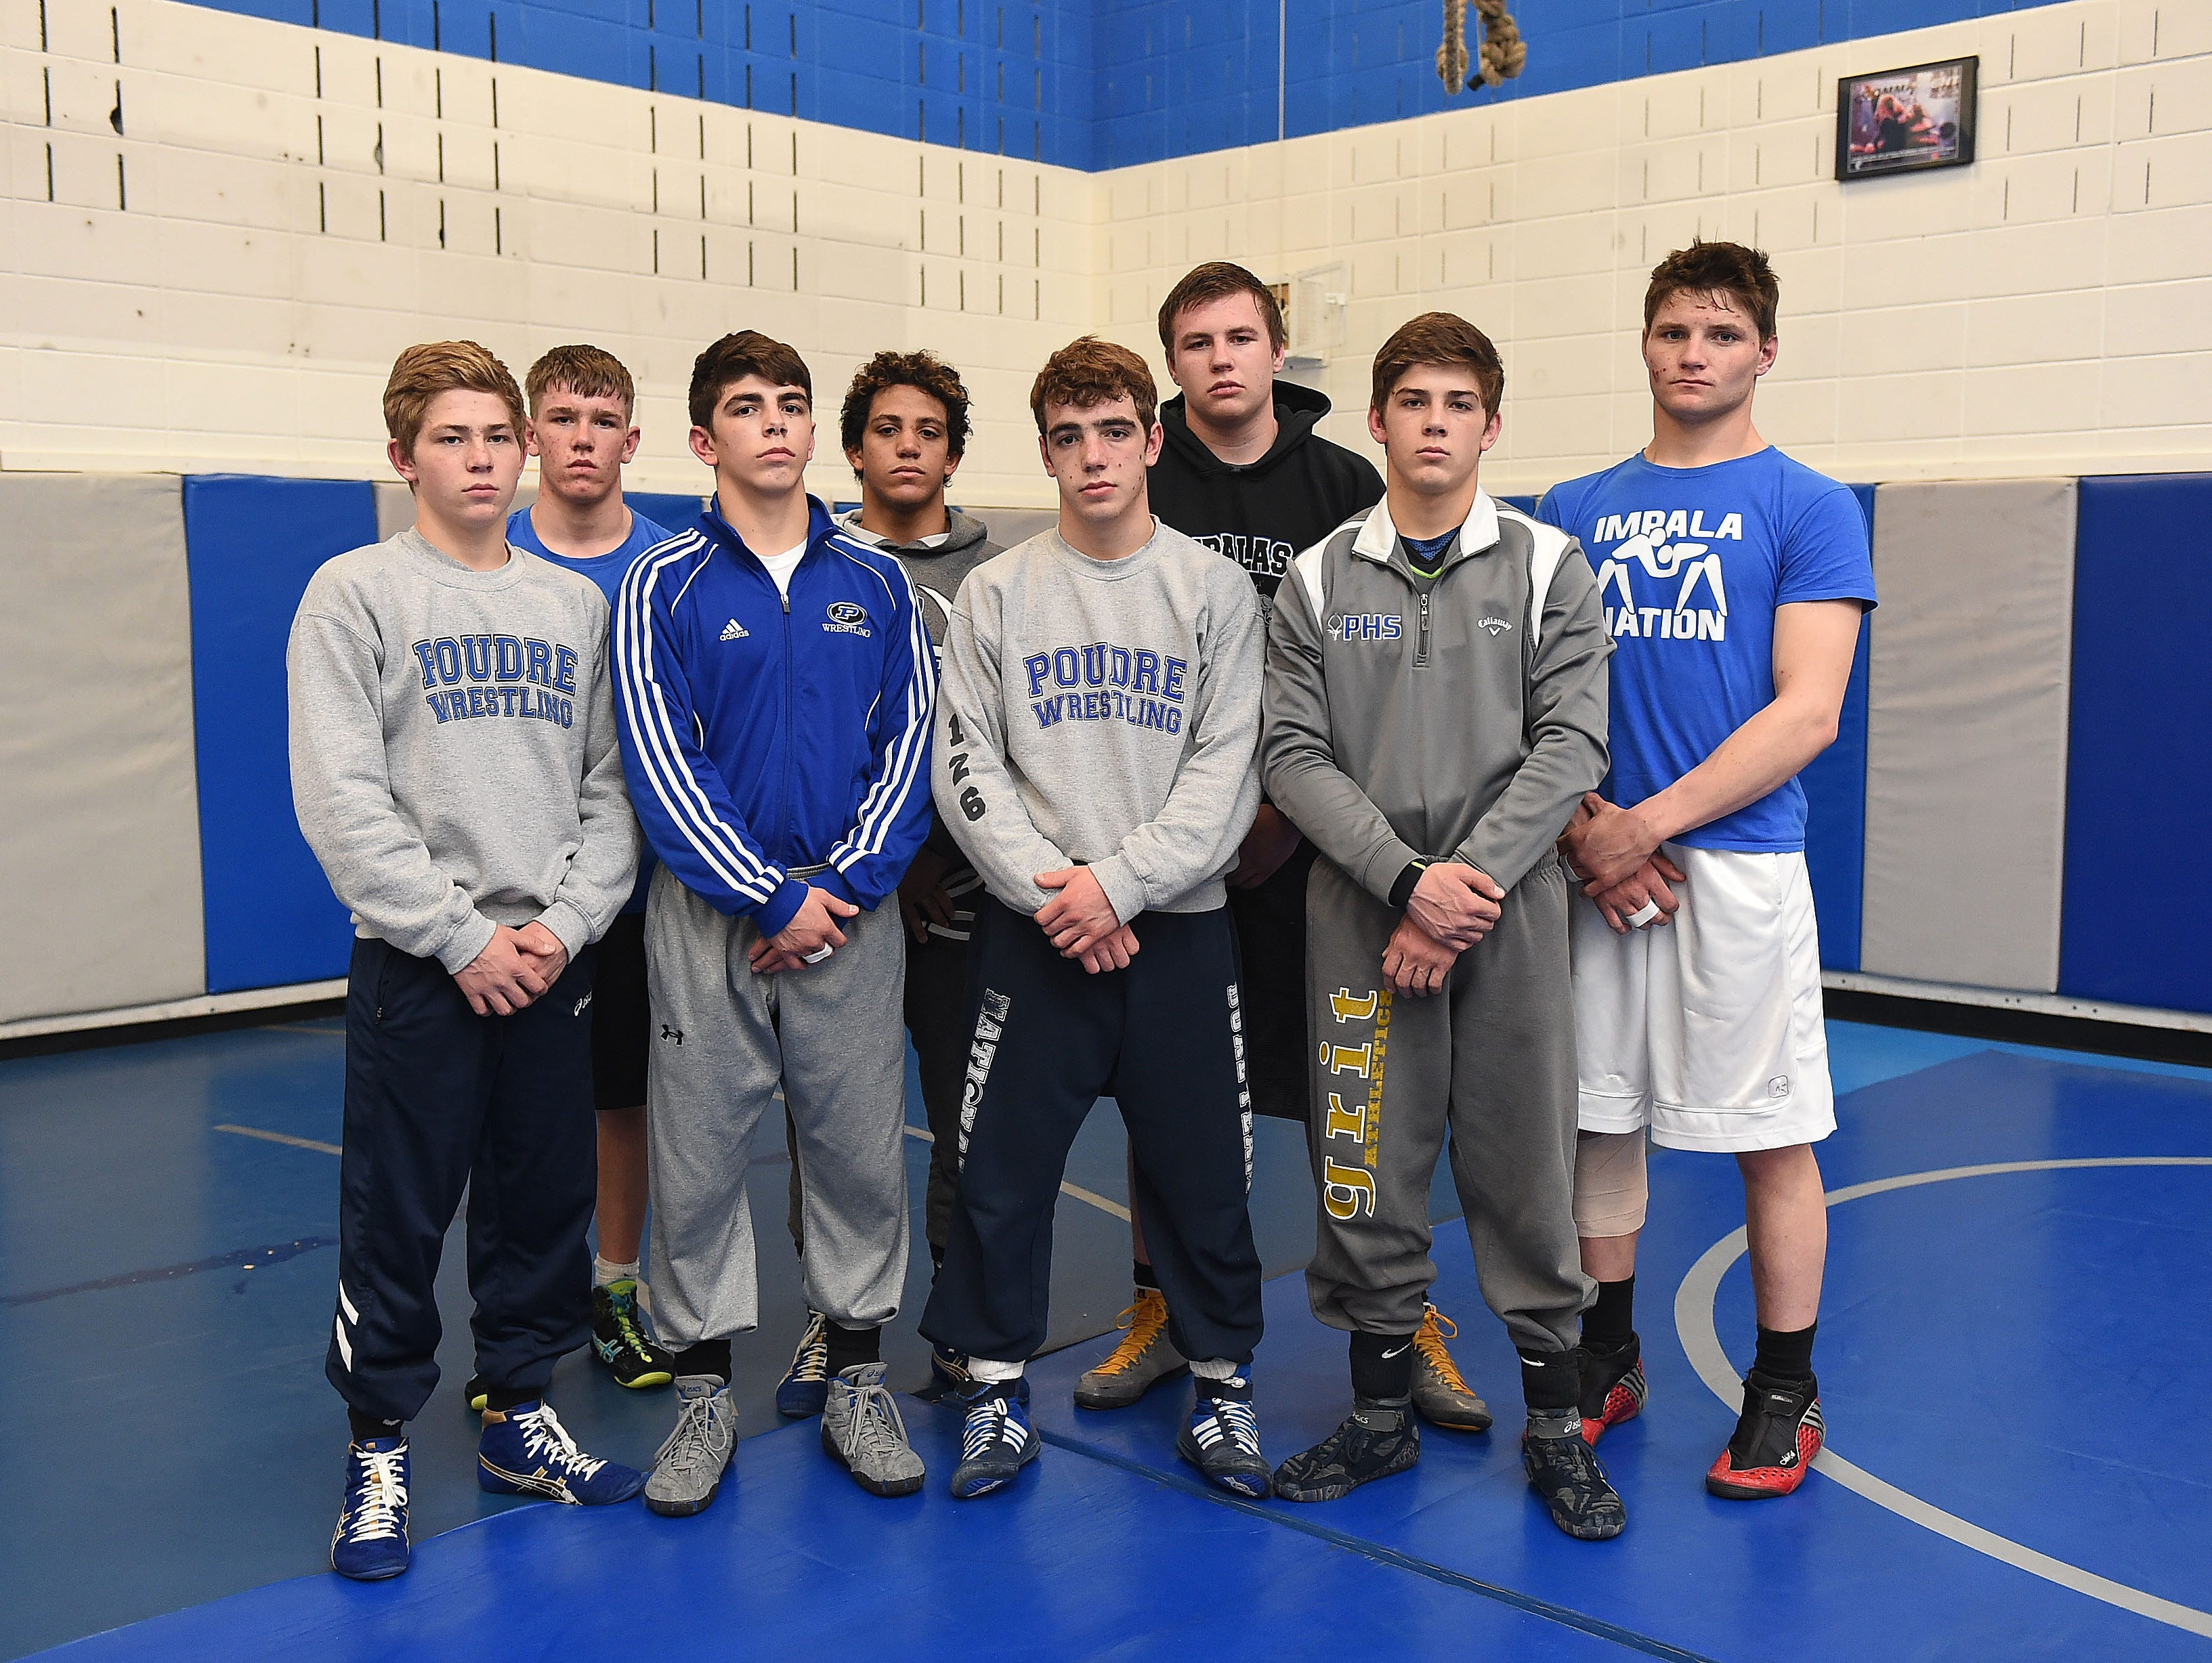 Eight Poudre High School wrestlers will compete at the state tournament in Denver this weekend. Back row, left to right: David Bekkedahl, Diego Calderon, Weston Mayer, Garret McCullar. Front row, left to right: Brody Lamb, Job Greenwood, Jacob Greenwood, Owen Lamb.